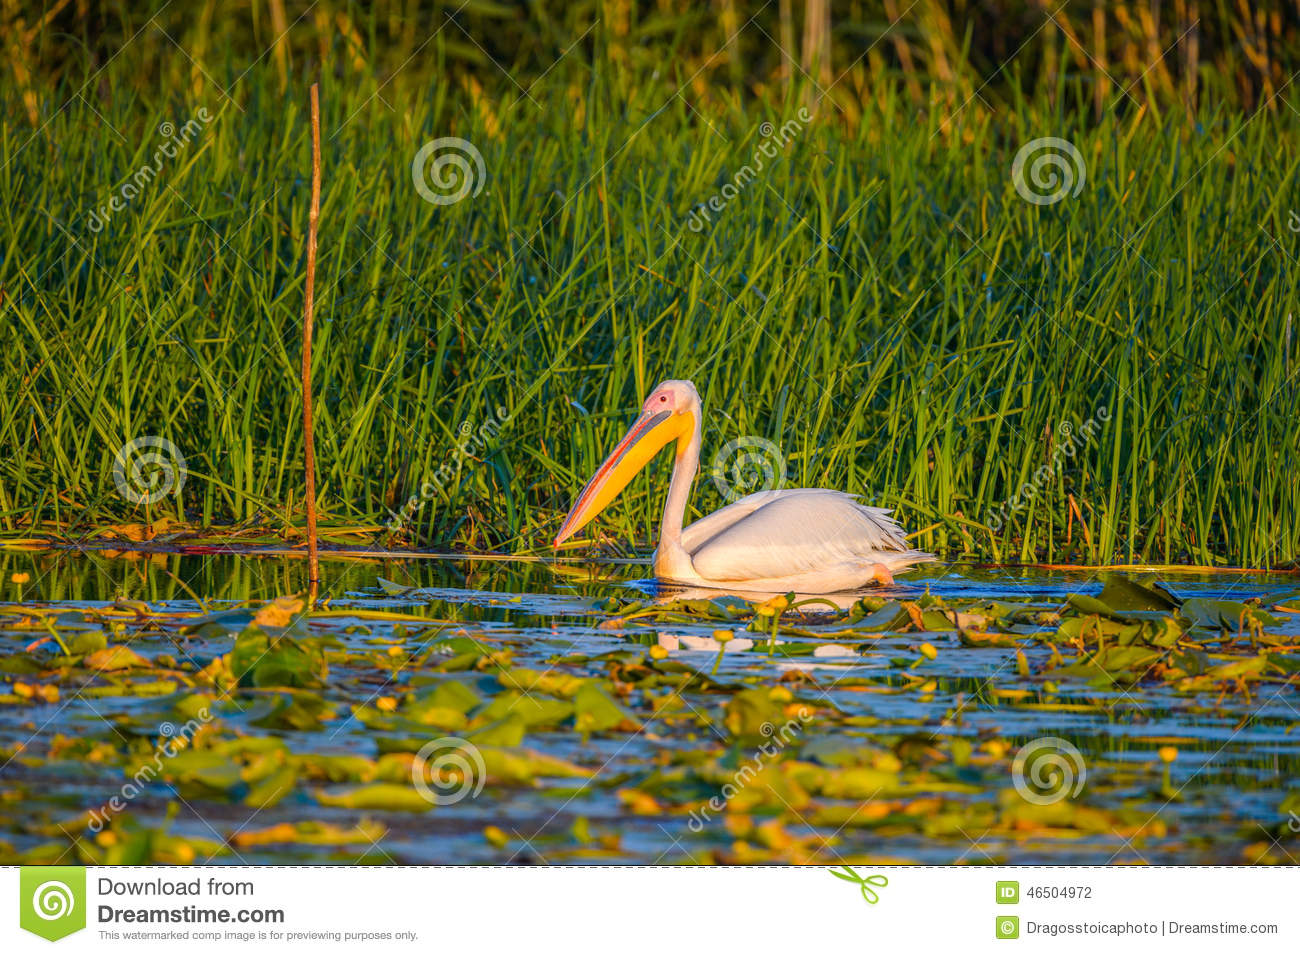 Image Result For Pelicanwater Com